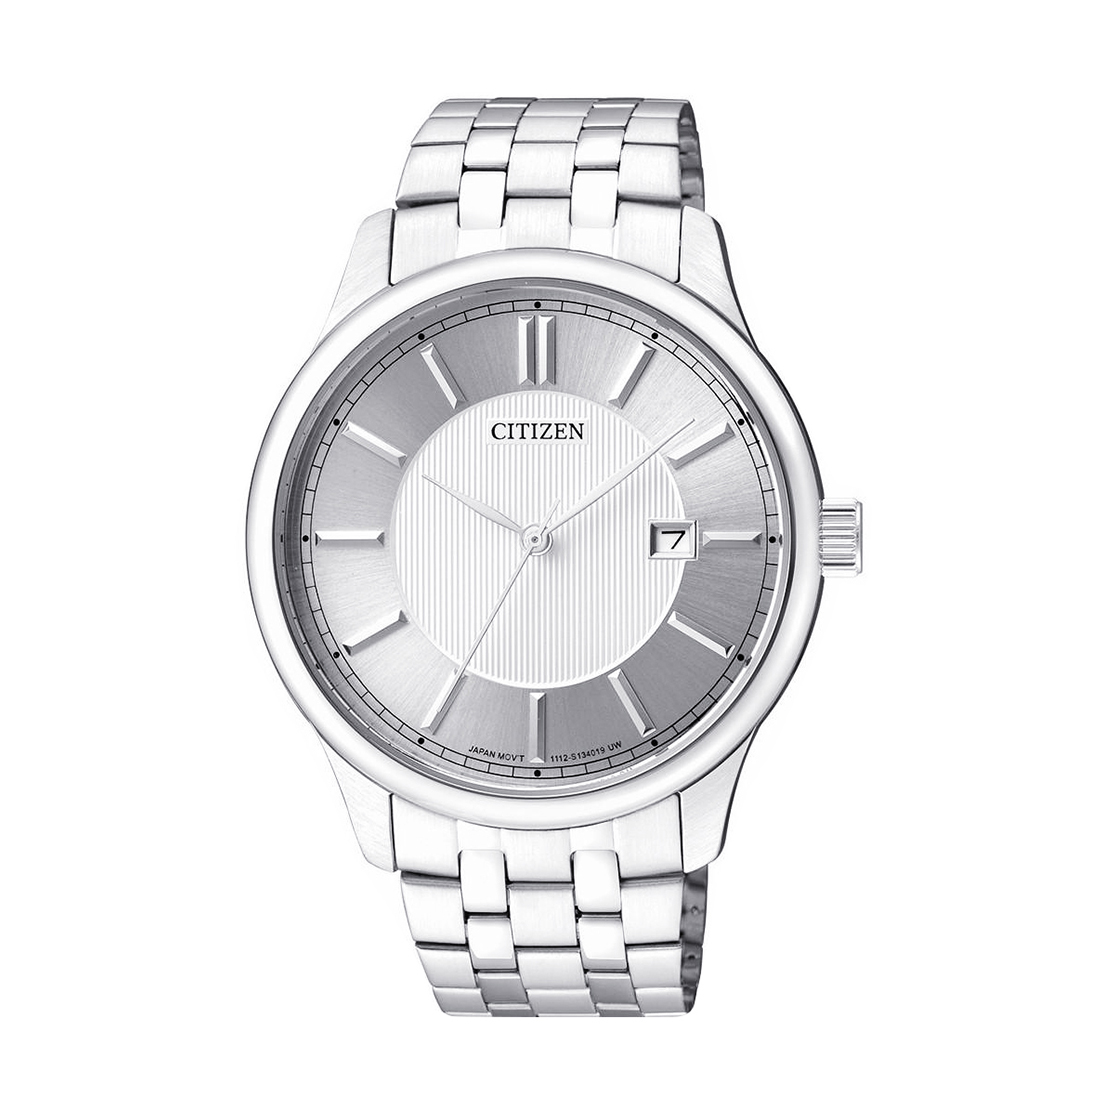 Citizen-Quartz-BI1050-56A